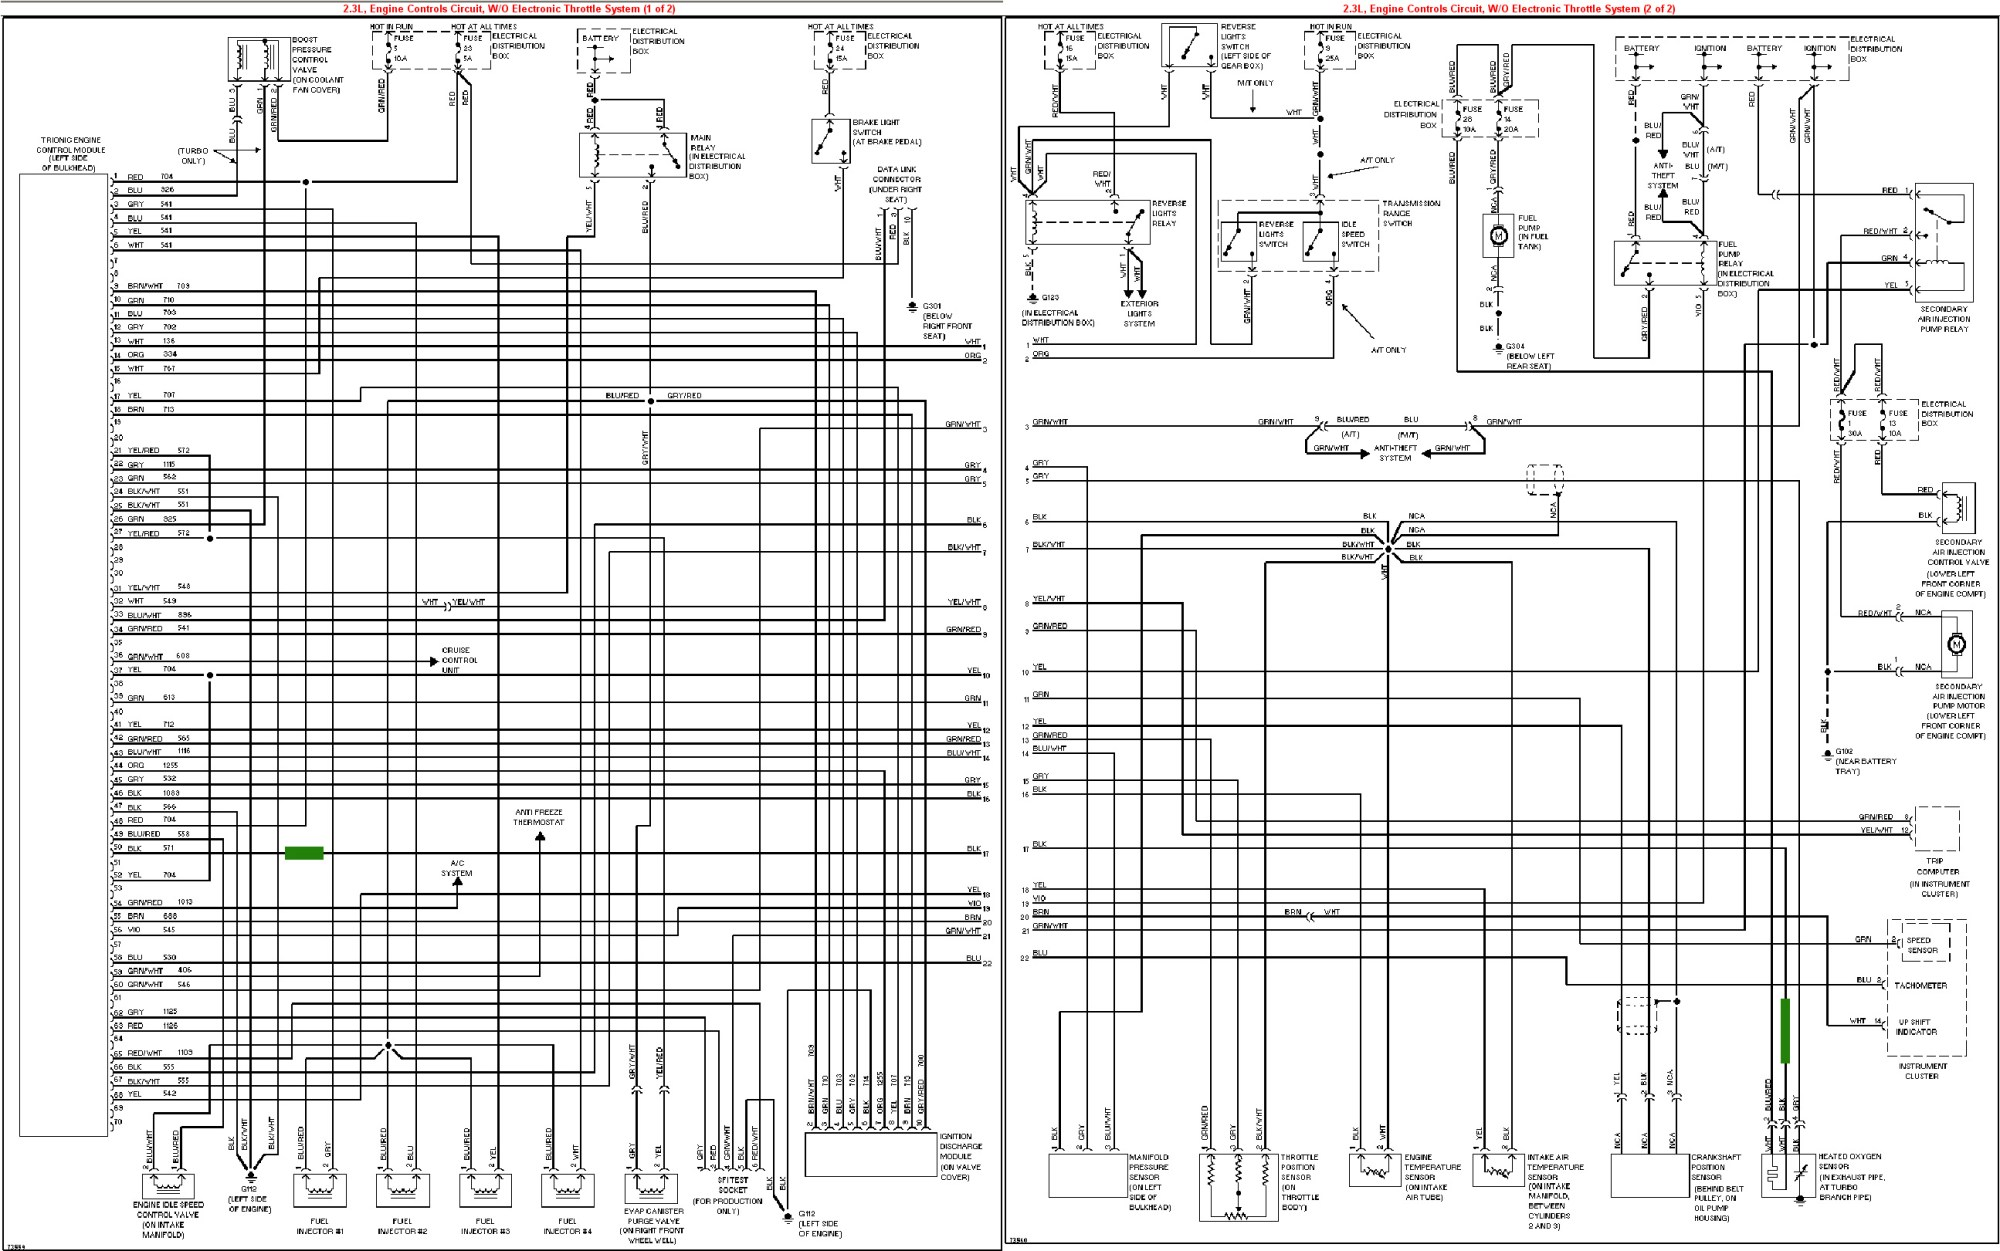 hight resolution of 2000 saab 9 3 engine diagram wiring diagrams international fuse diagram saab aero fuse diagram